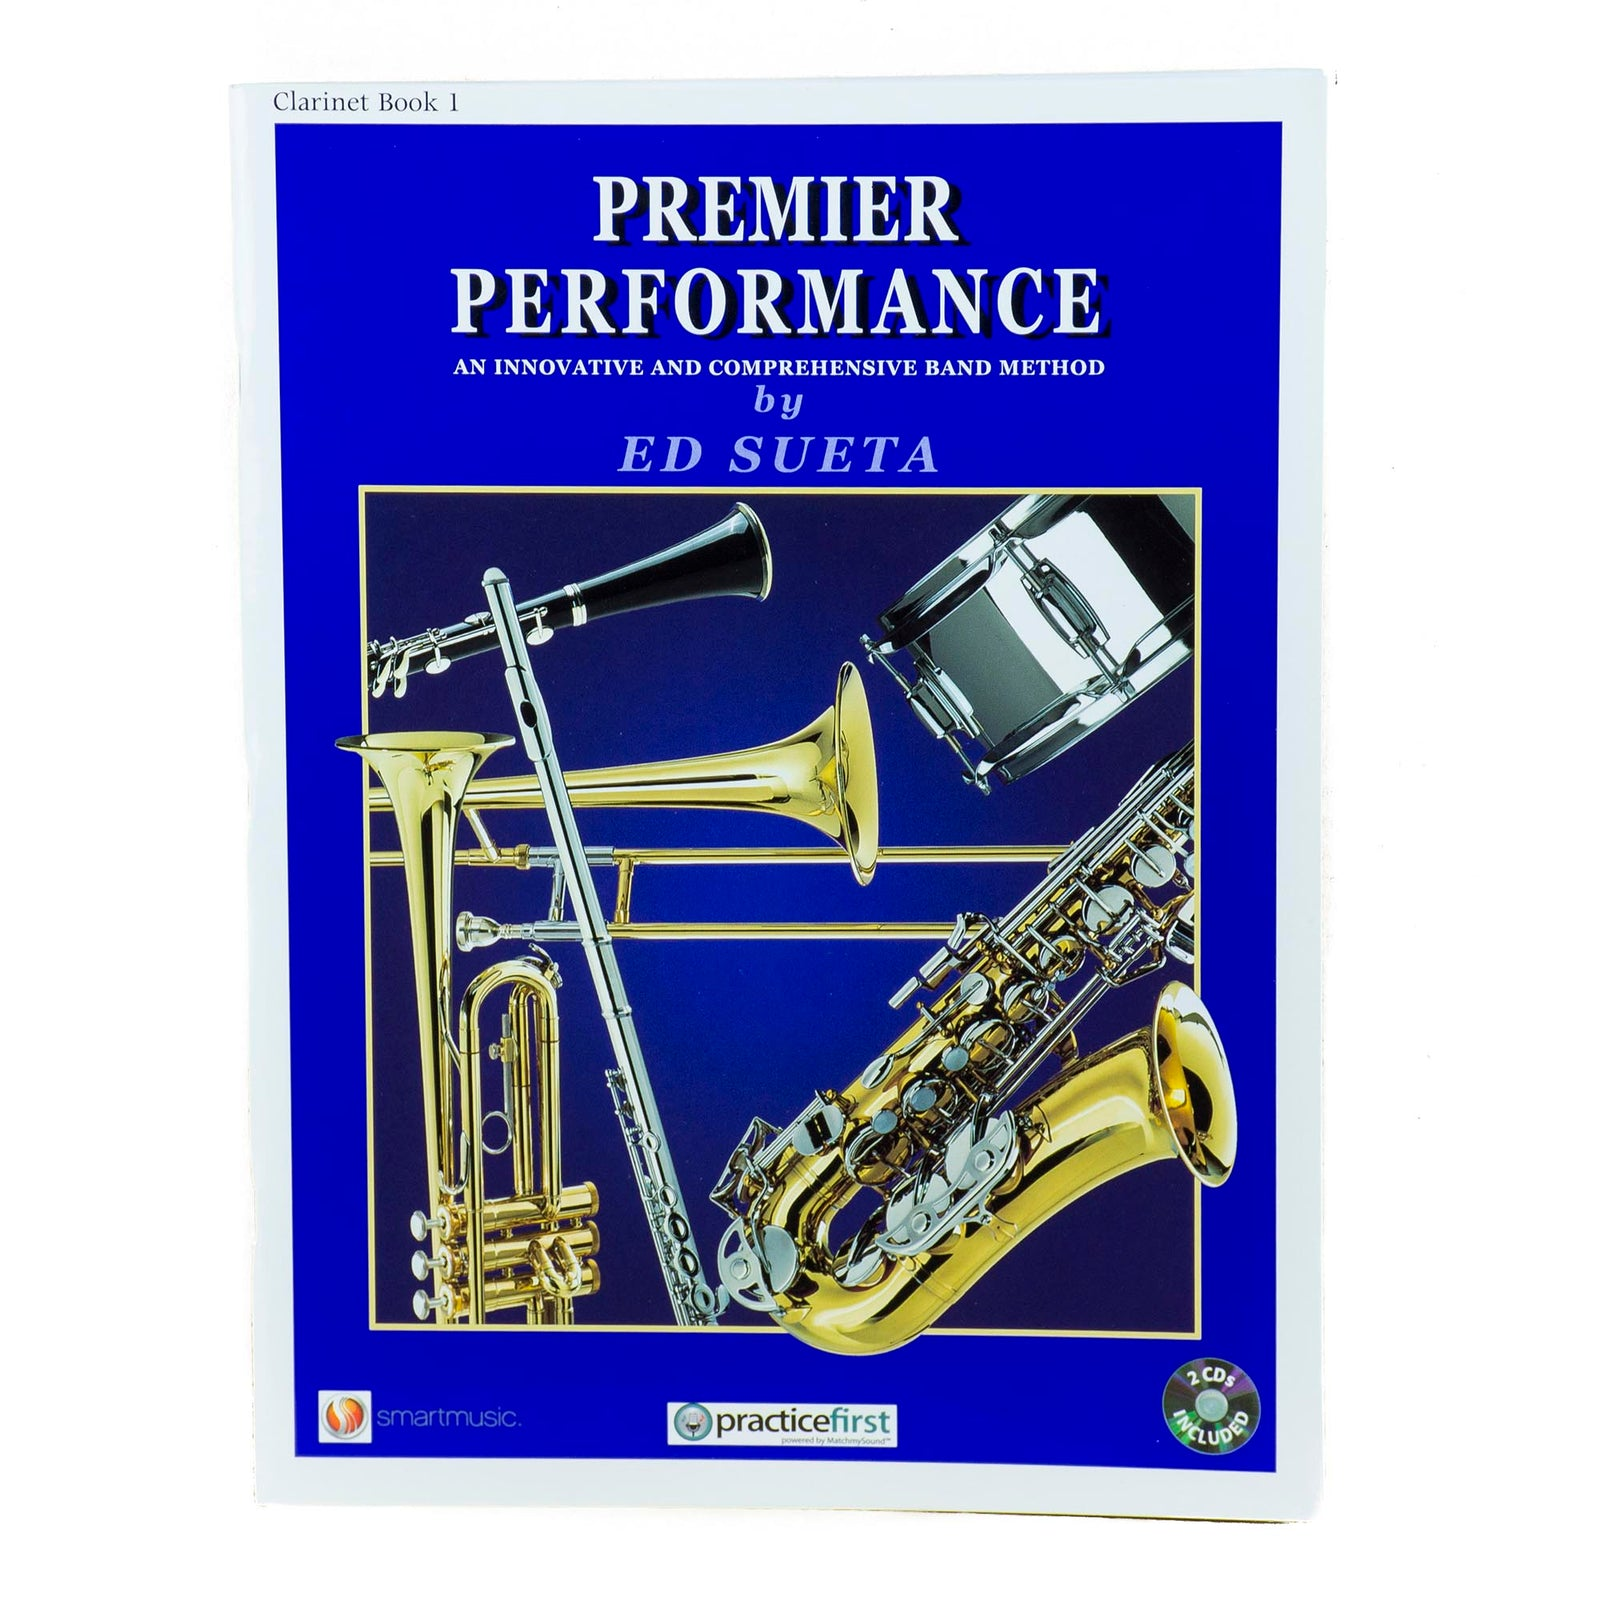 Premier Performance Clarinet Book 1 With CD